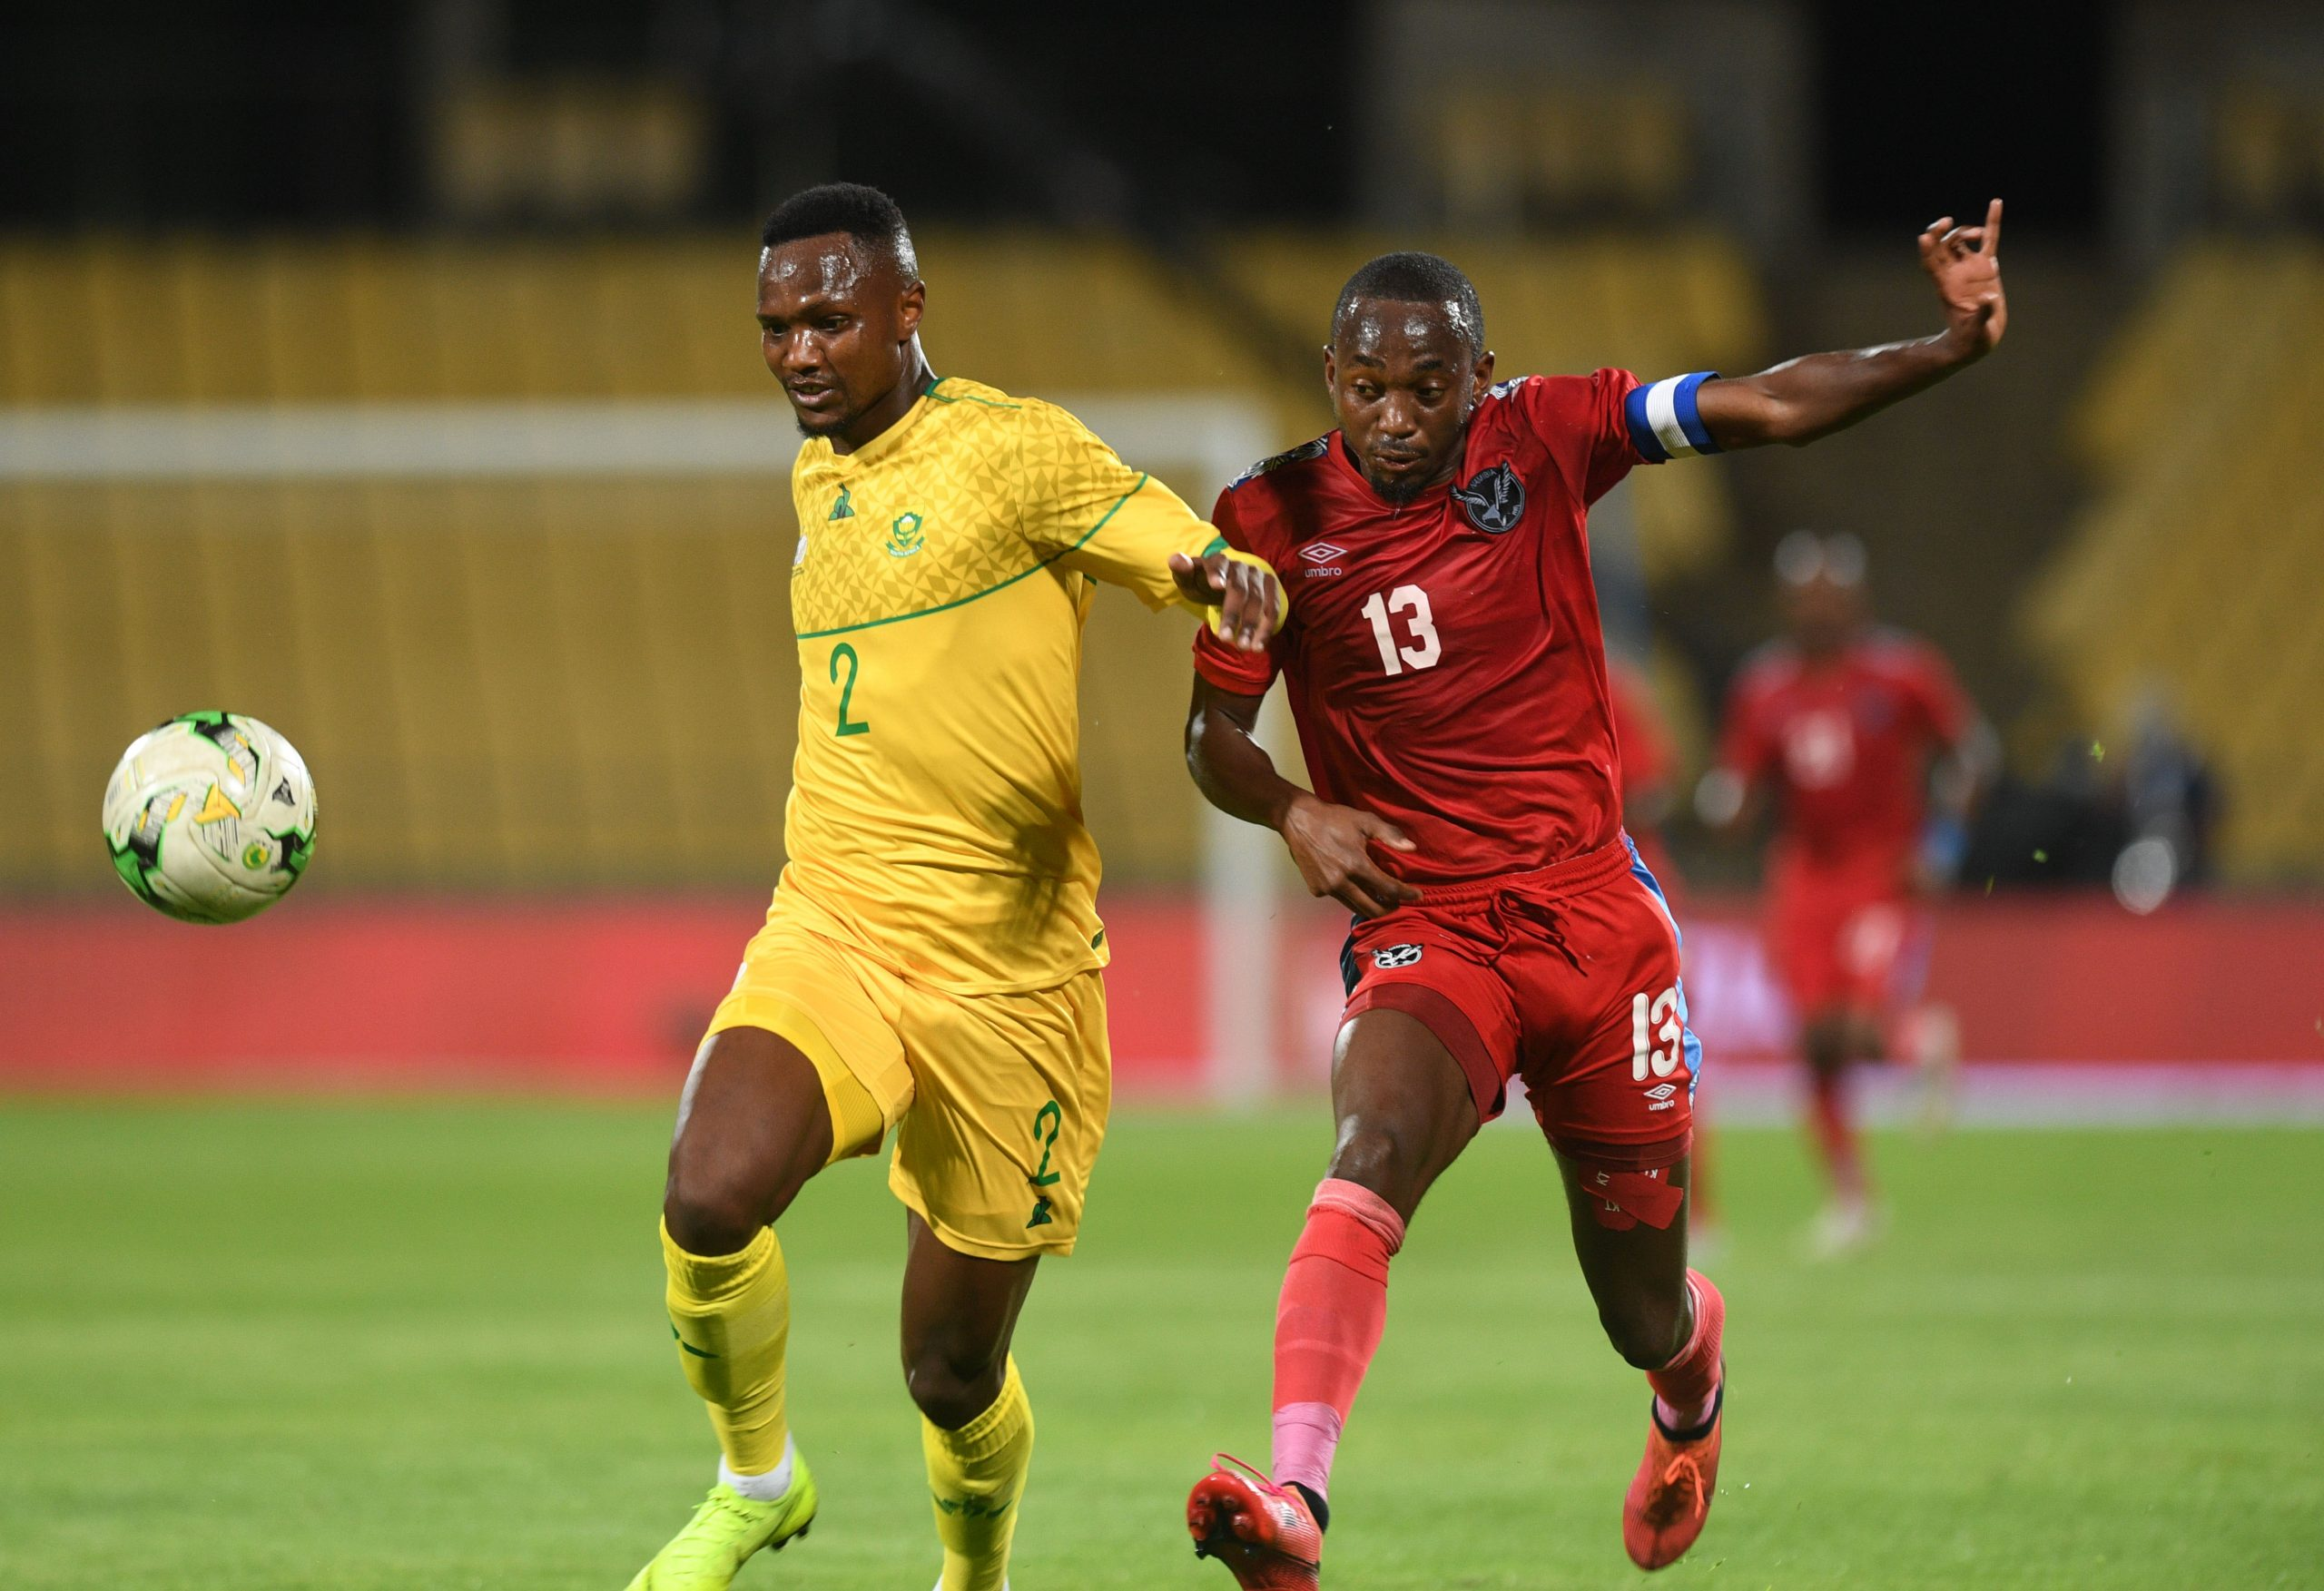 South Africa draw 1 - 1 with Namibia in international friendly - Sports Leo